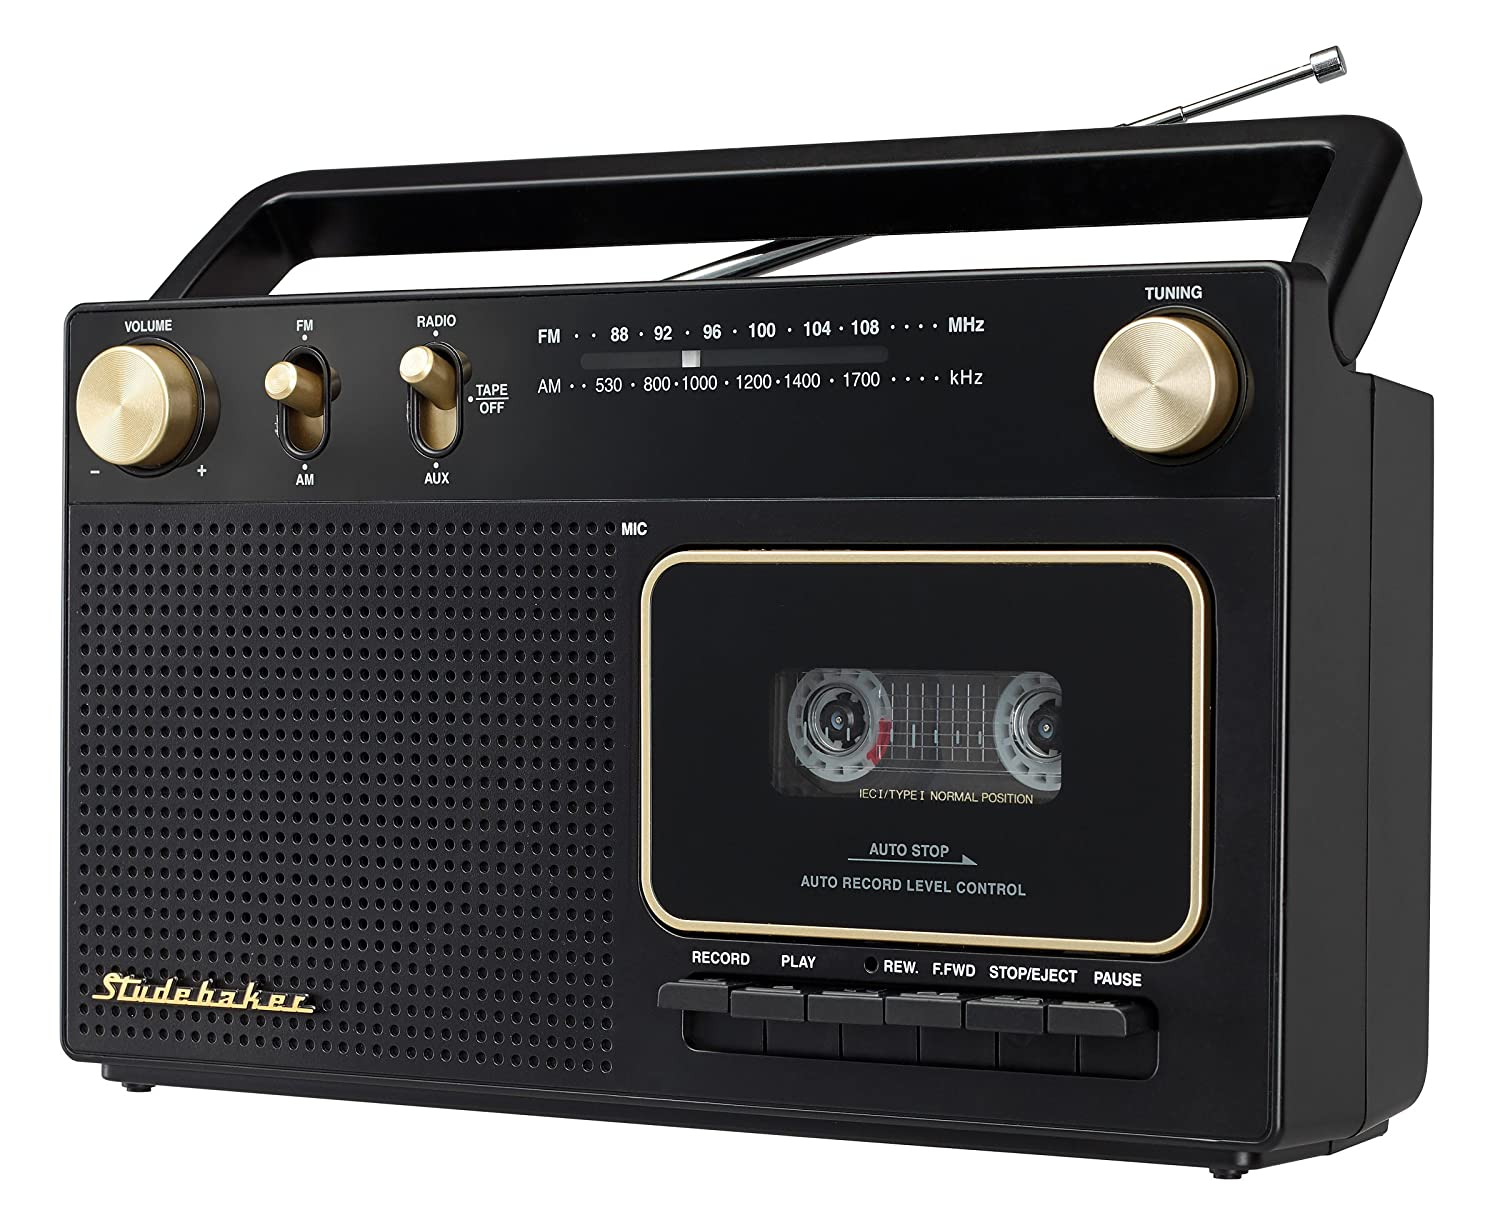 Studebaker Portable Retro Home Audio Stereo AM/FM Radio & Cassette Player/Recorder with Aux Input Jack & Built in Speakers (Limited Edition) SB2129BG Limited Edition